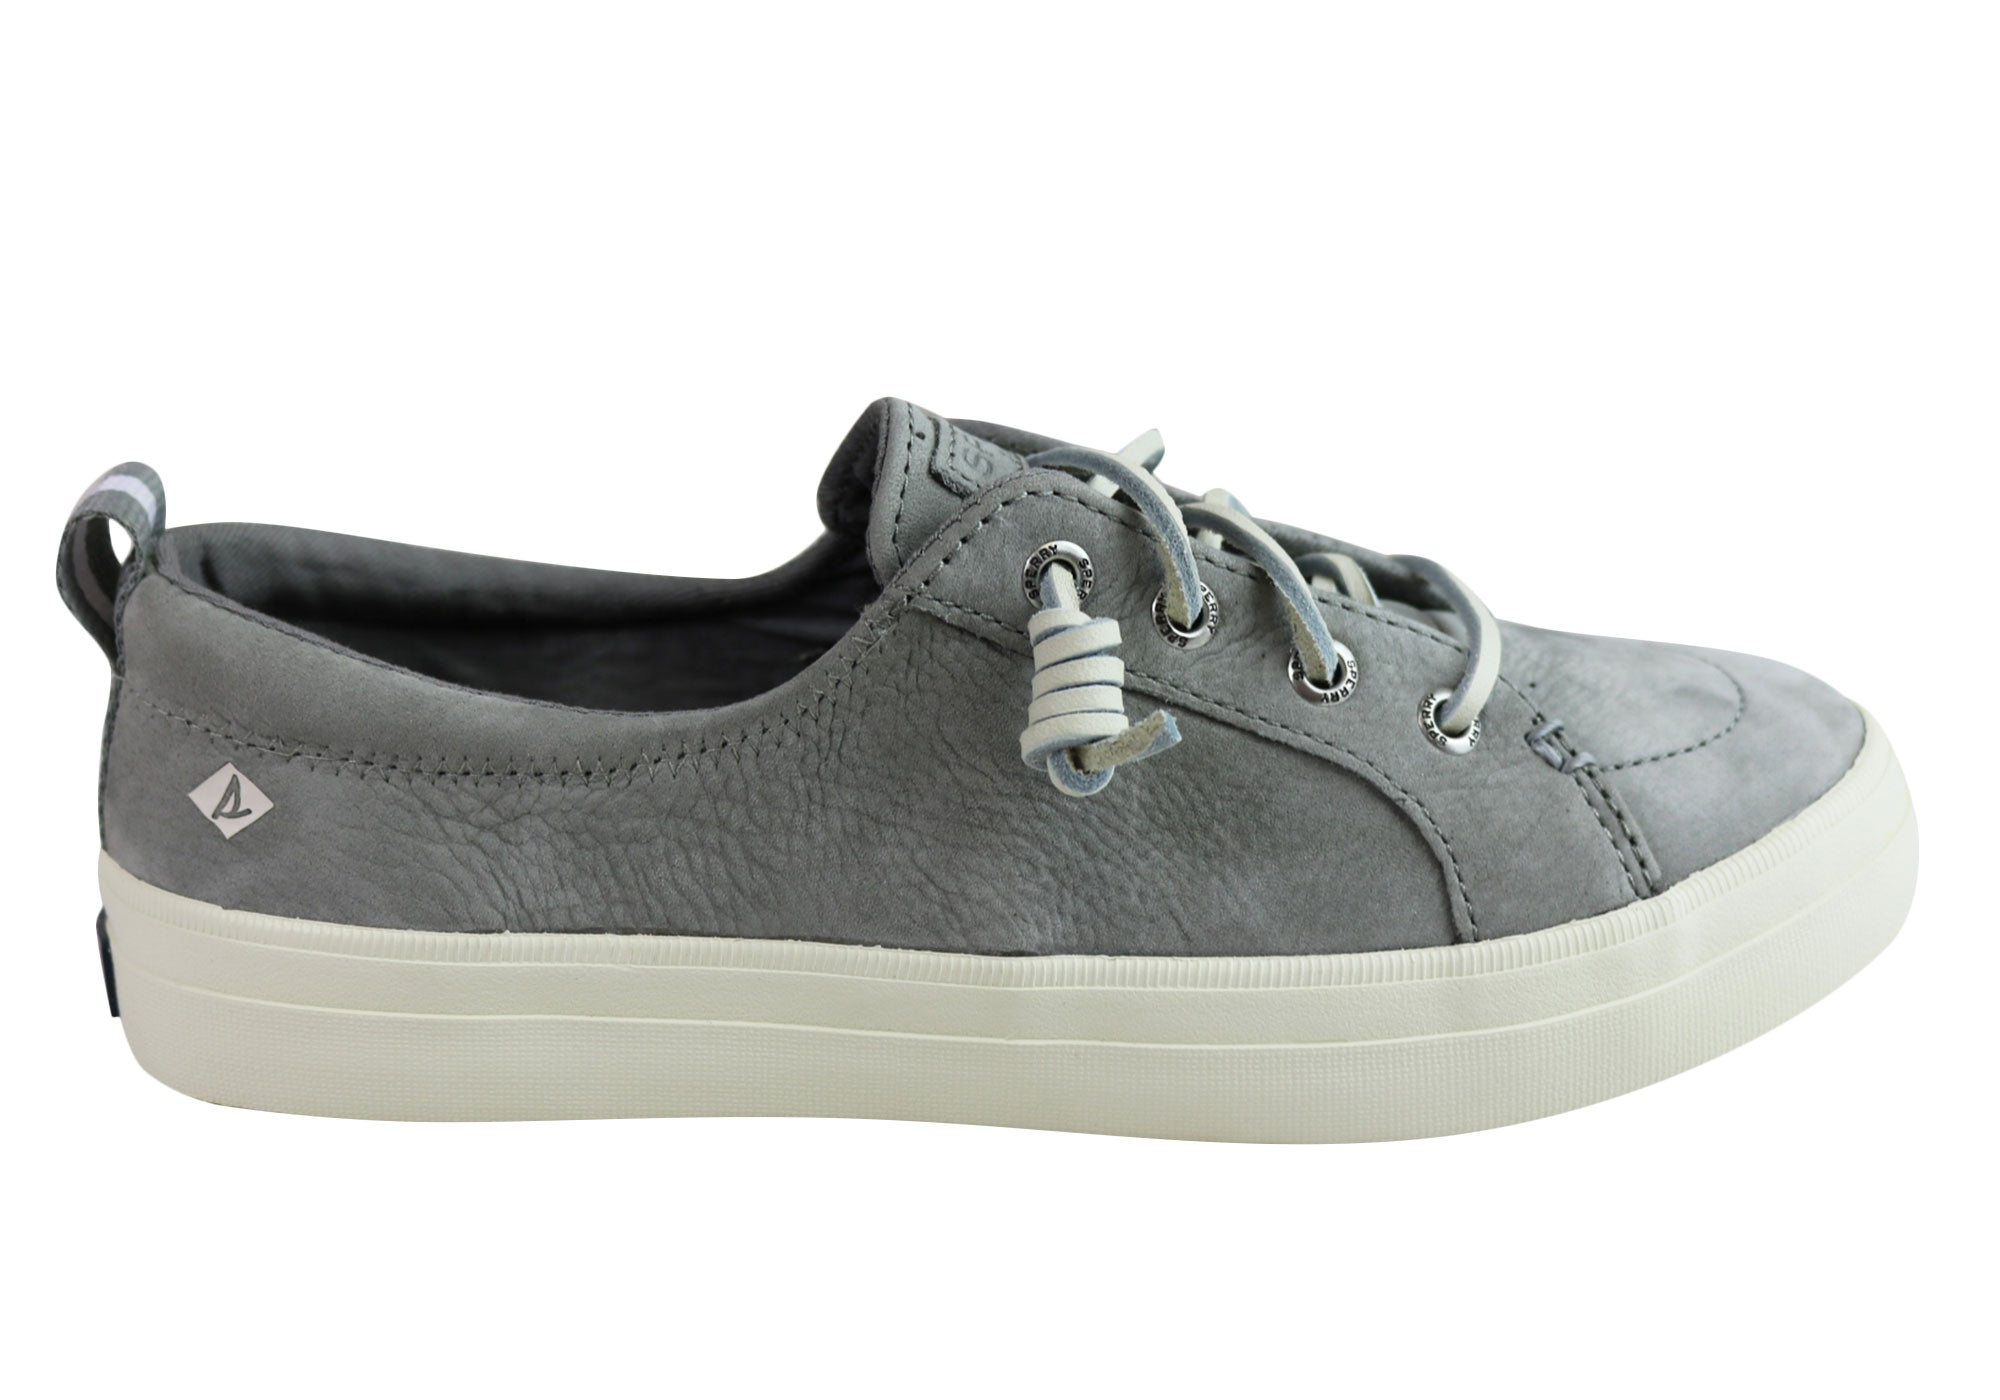 56ca1c2230182 Sperry Womens Comfortable Fashion Crest Vibe Washable Leather Sneakers